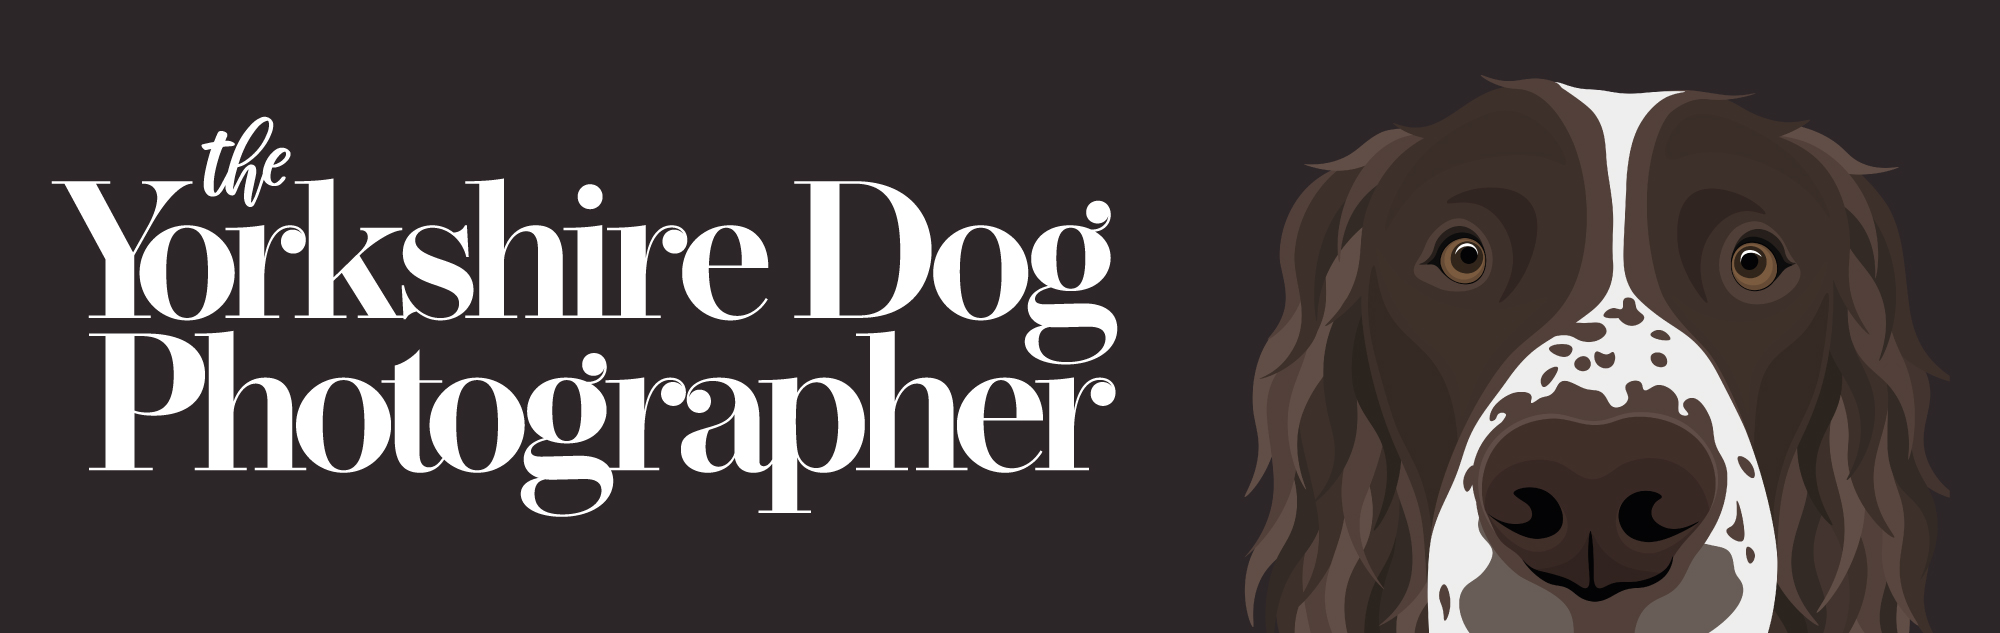 The Yorkshire Dog Photographer Image